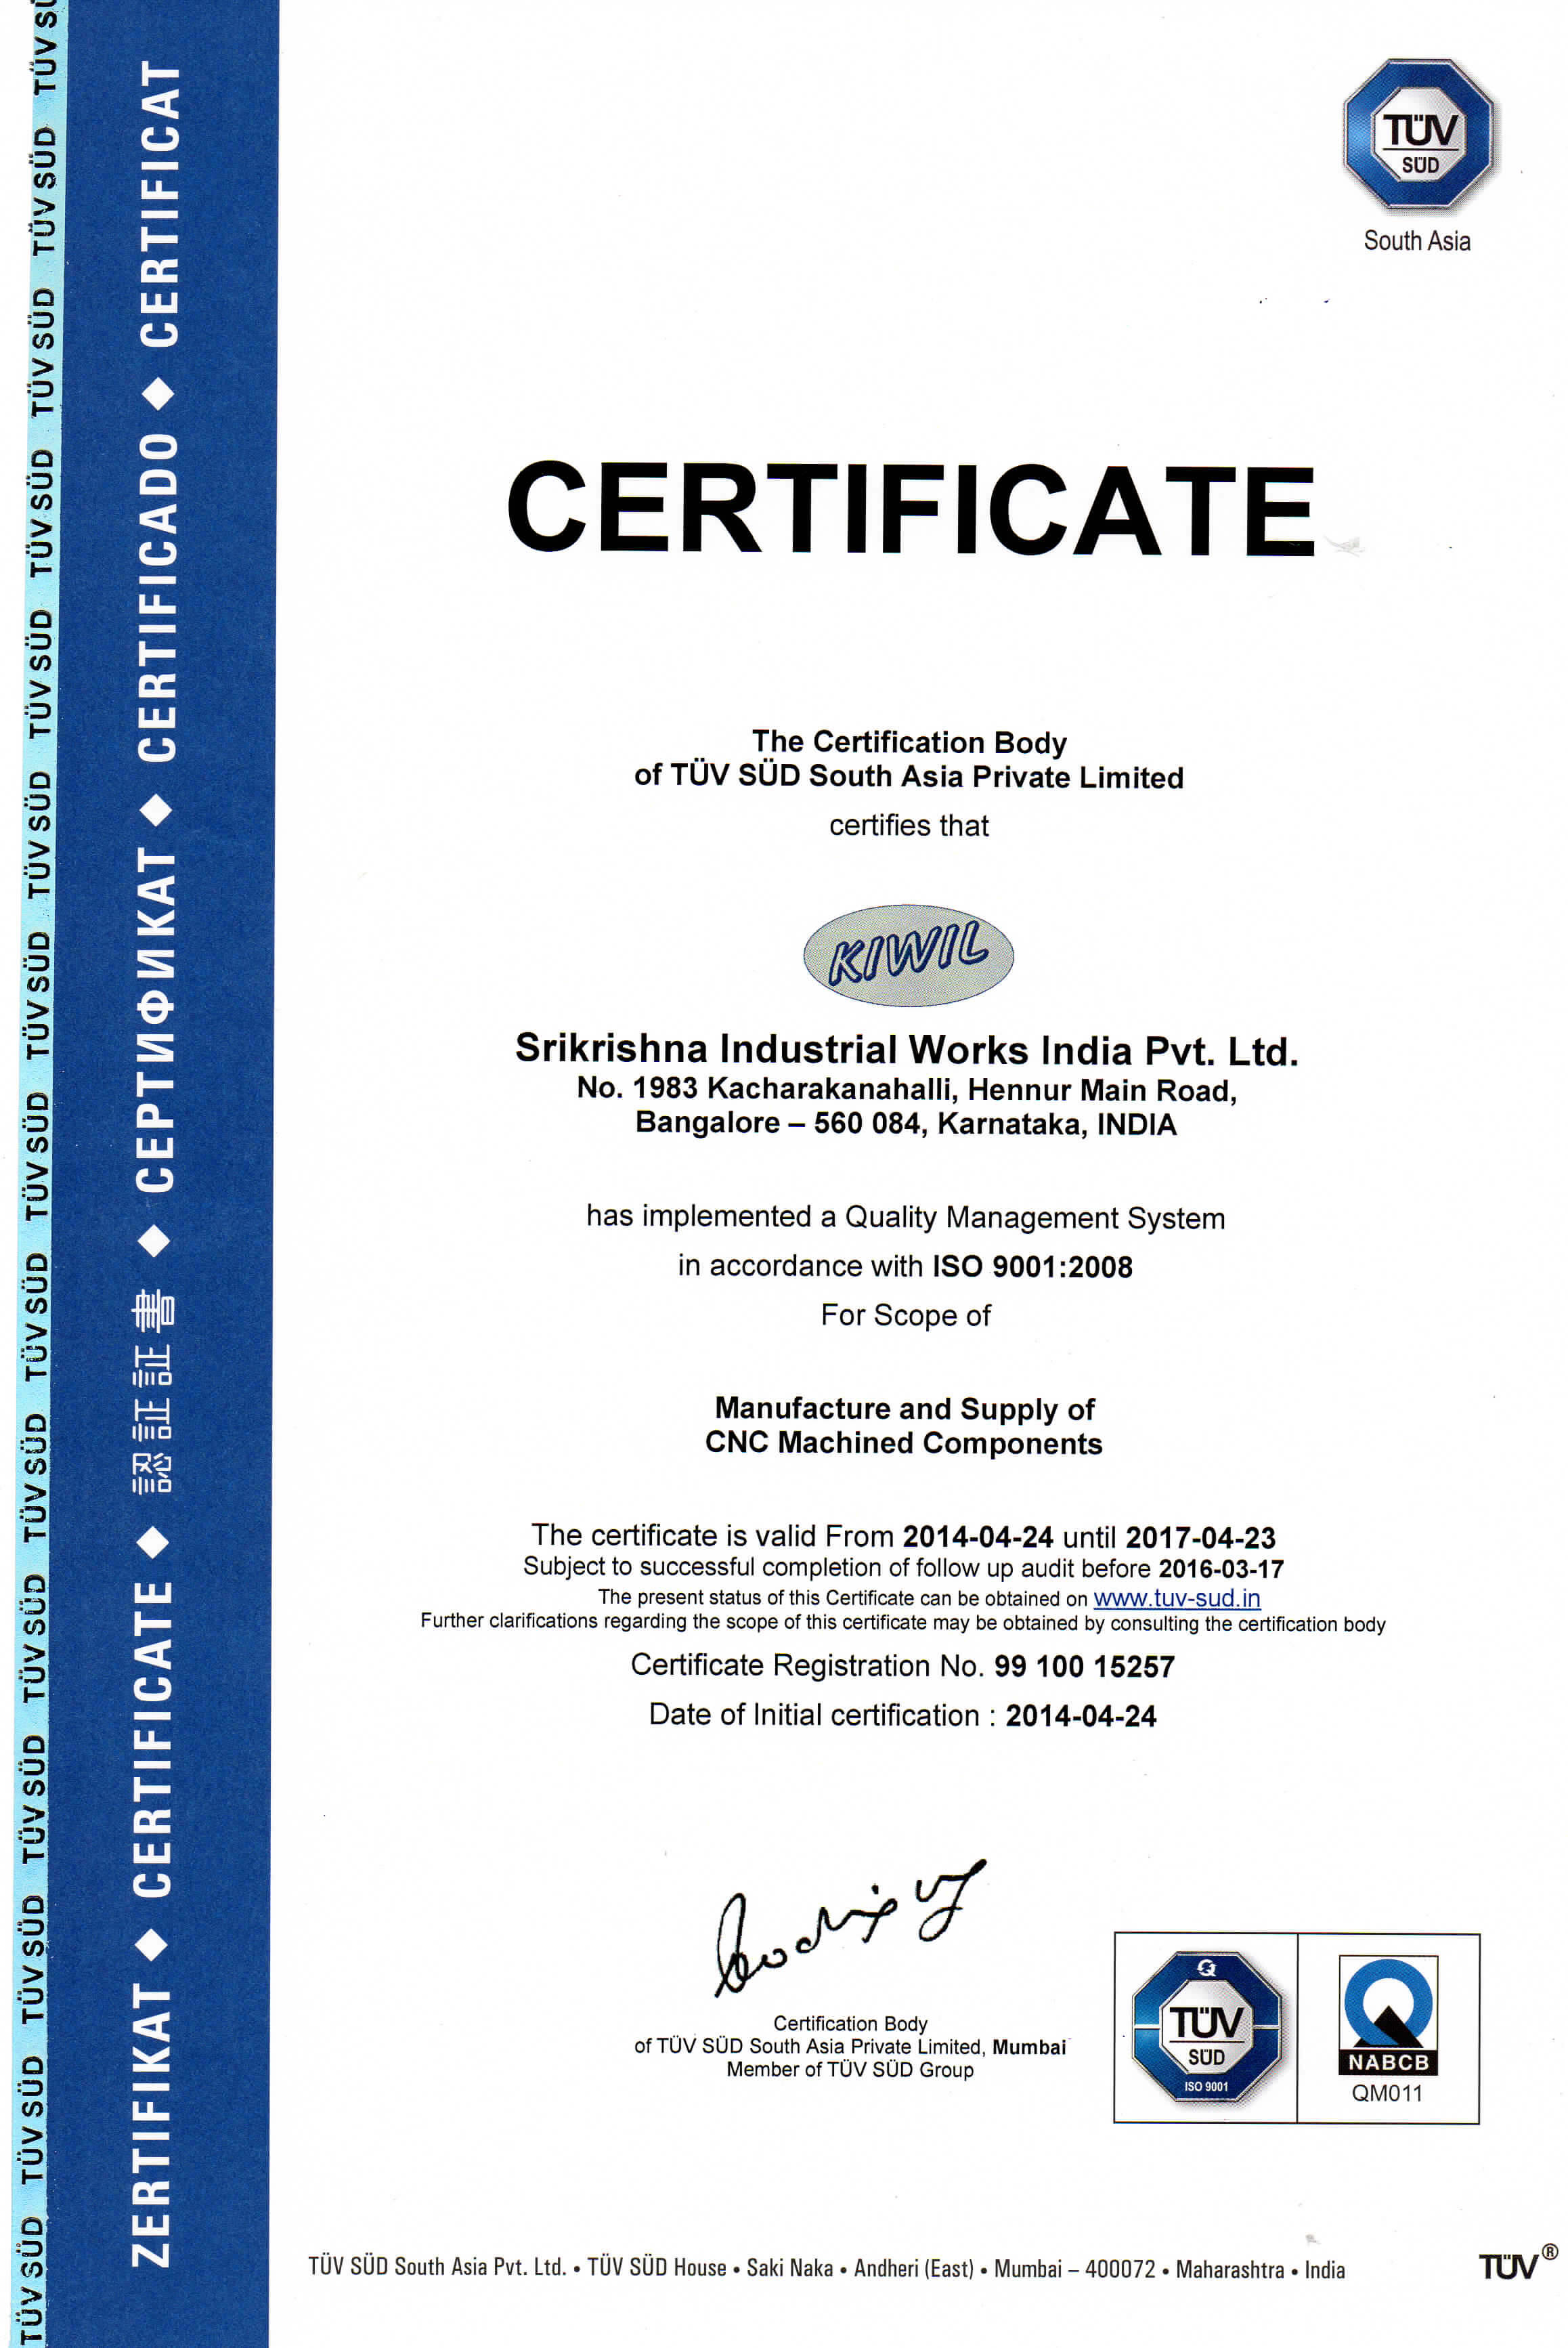 Quality we are iso 9001 2008 certified and we are in the process of as 9100 rev c certification xflitez Image collections